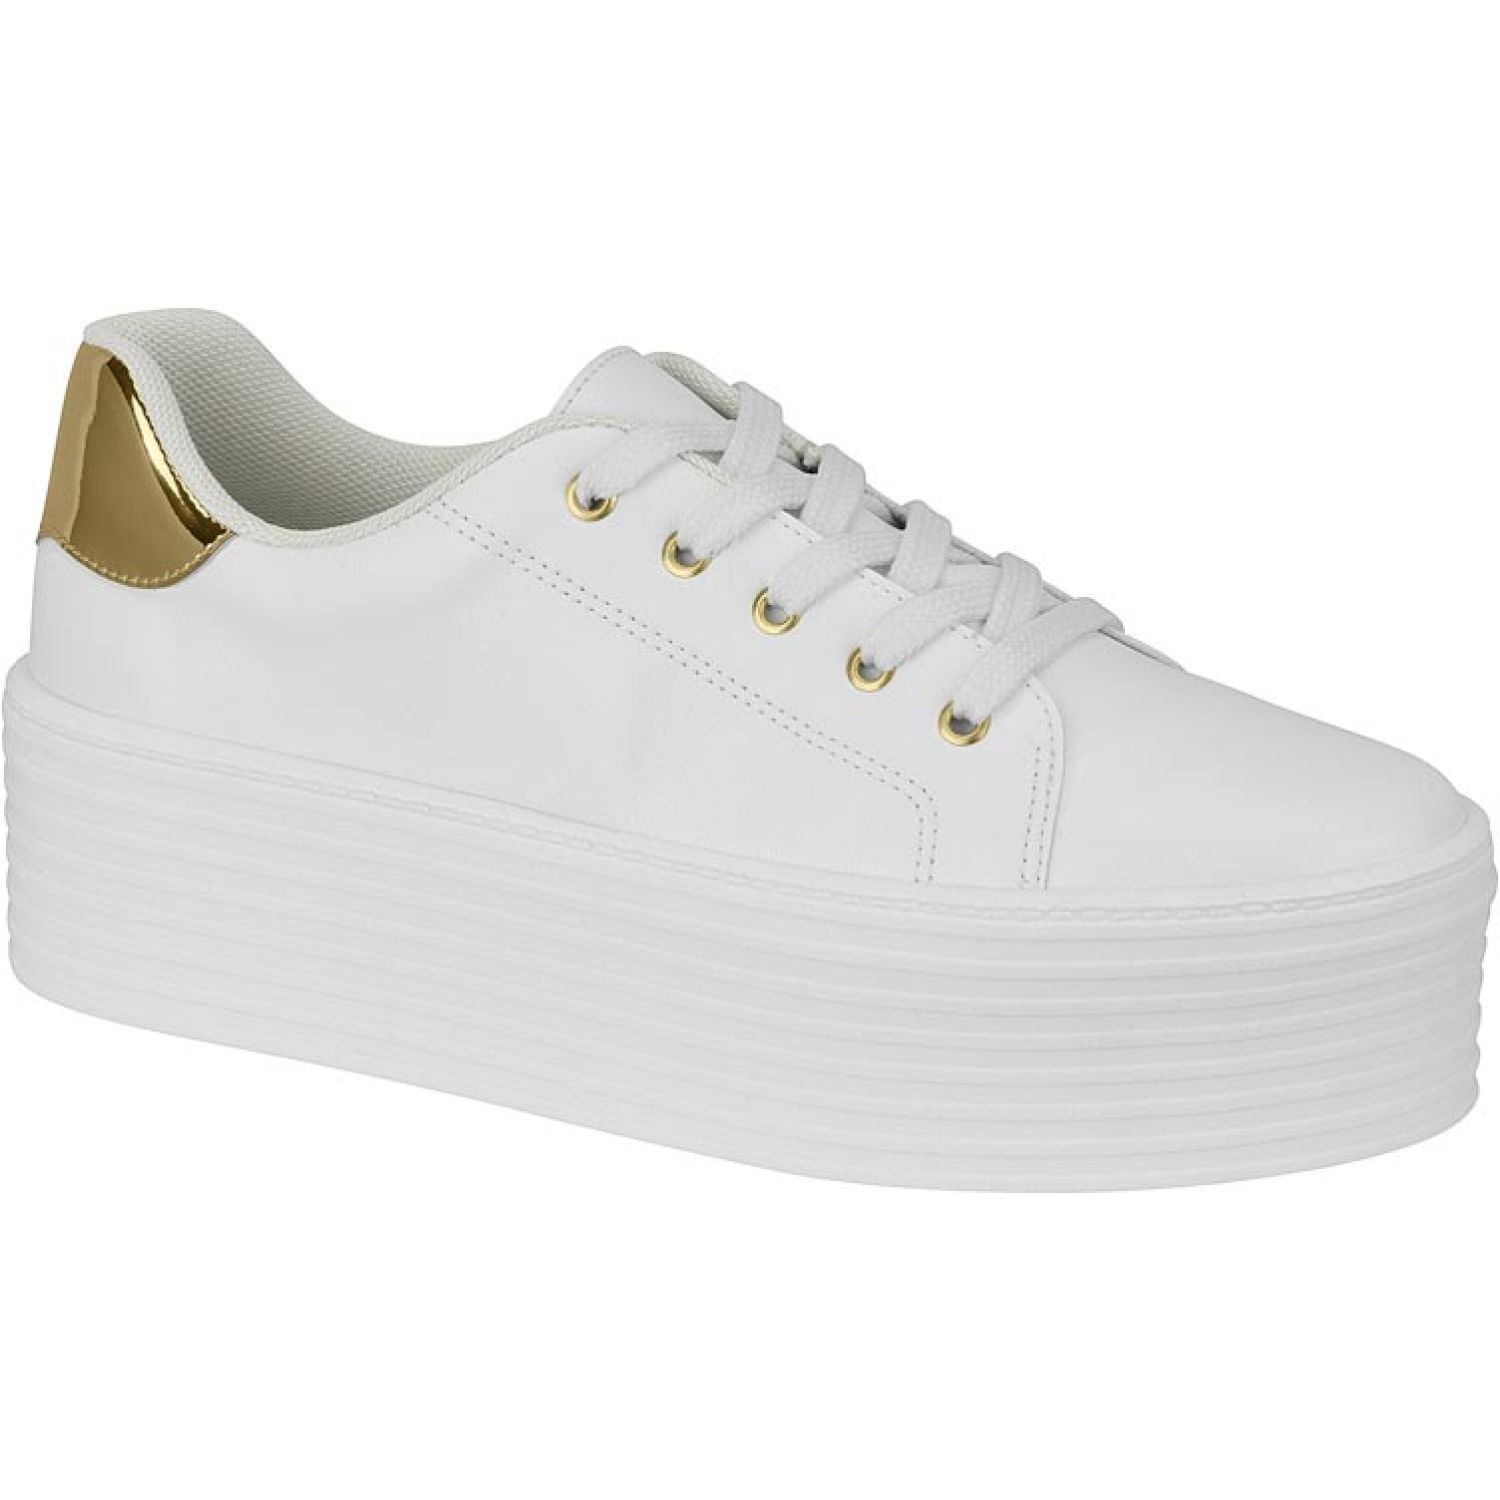 BEIRA RIO 4256.100.12638-17165 Blanco Zapatillas Fashion